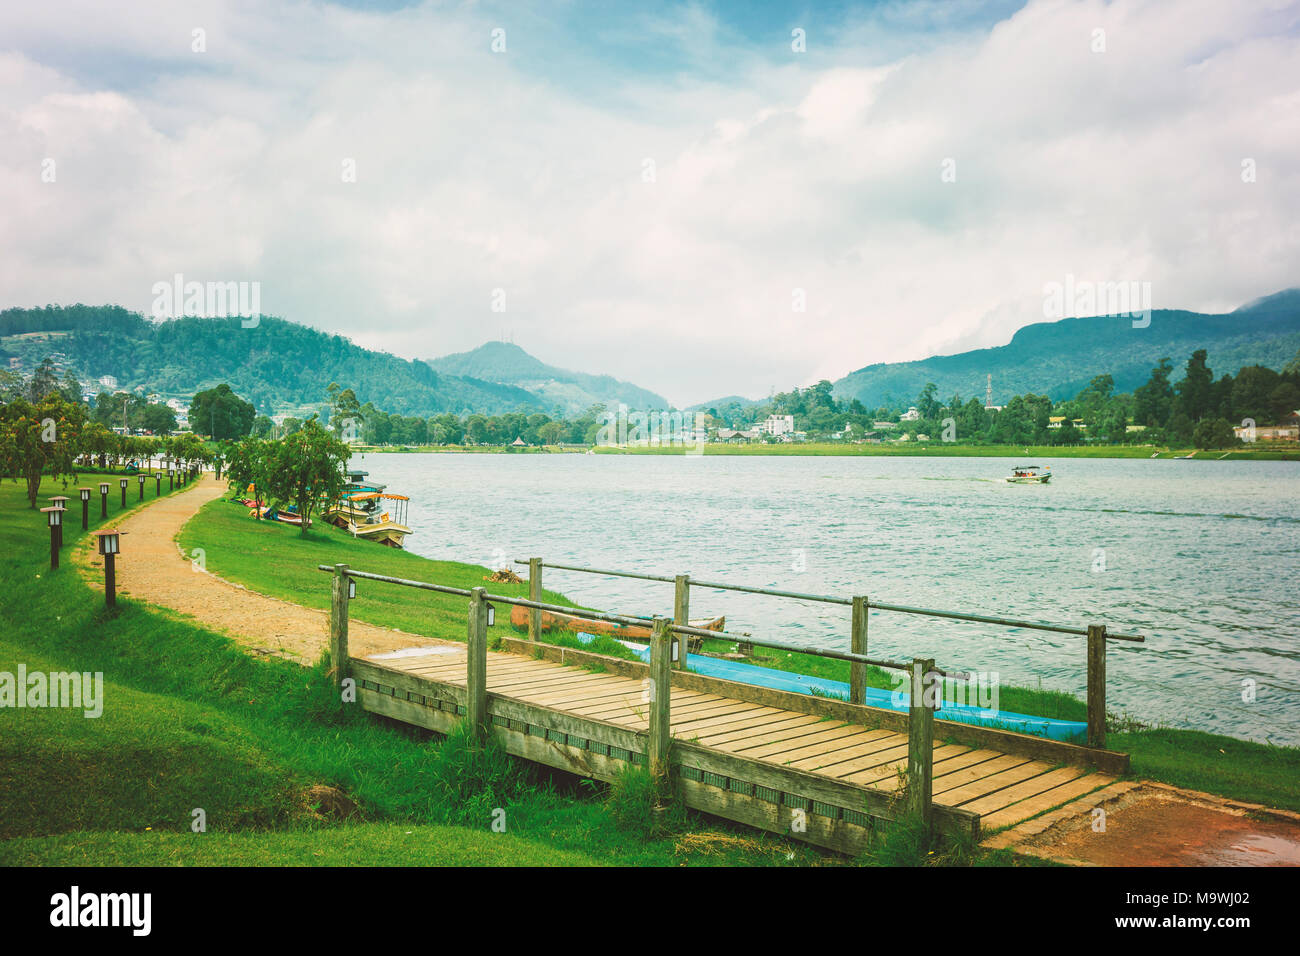 landscape with Gregory lake in Nuwara Eliya, Sri Lanka - Stock Image